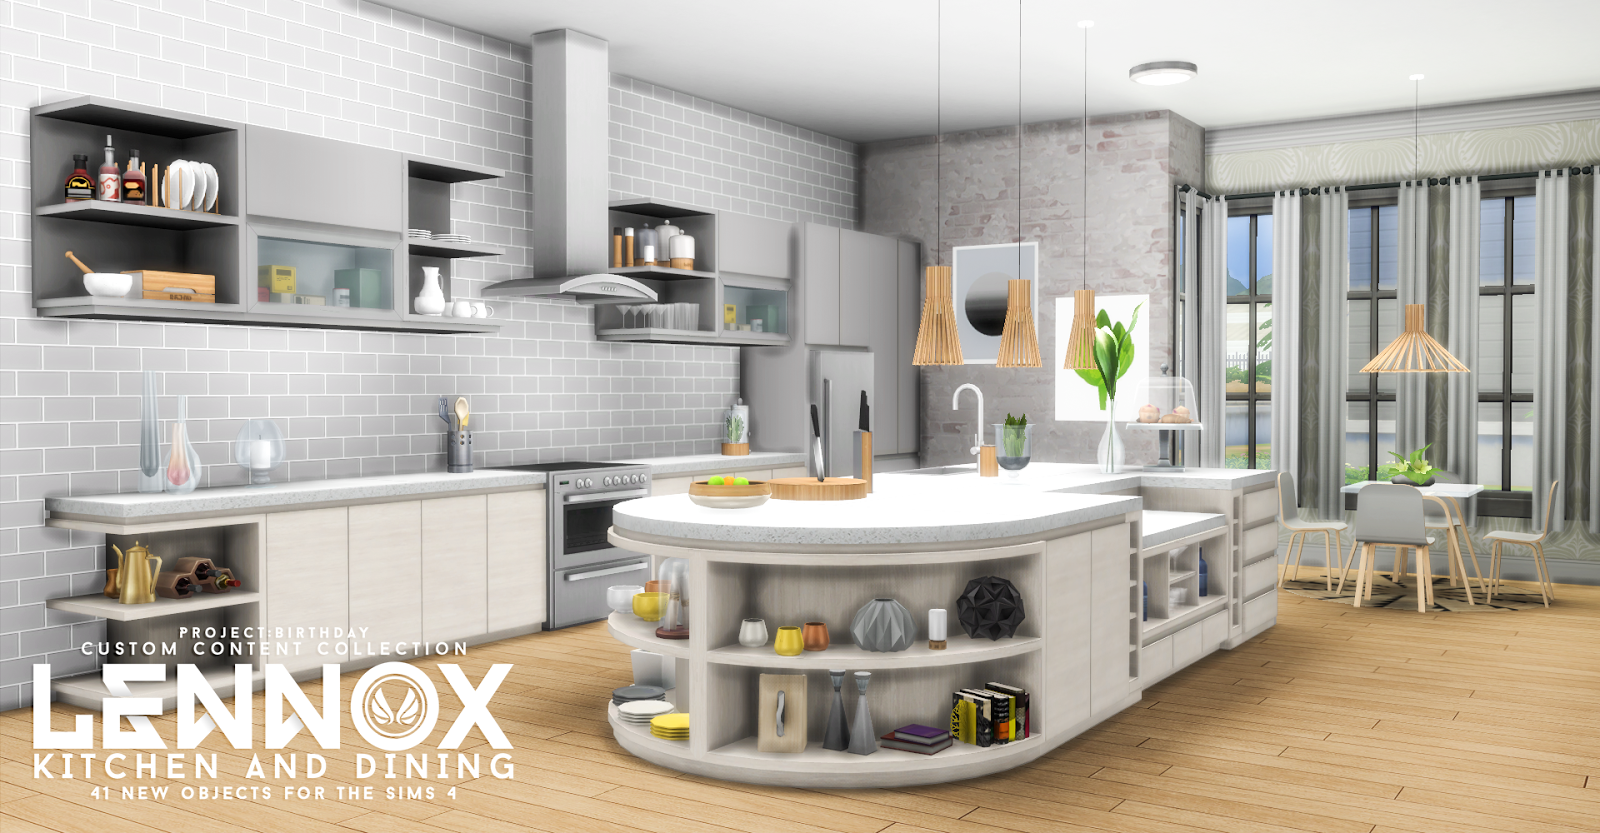 sims 4 blog updated lennox kitchen and dining set by peacemaker ic